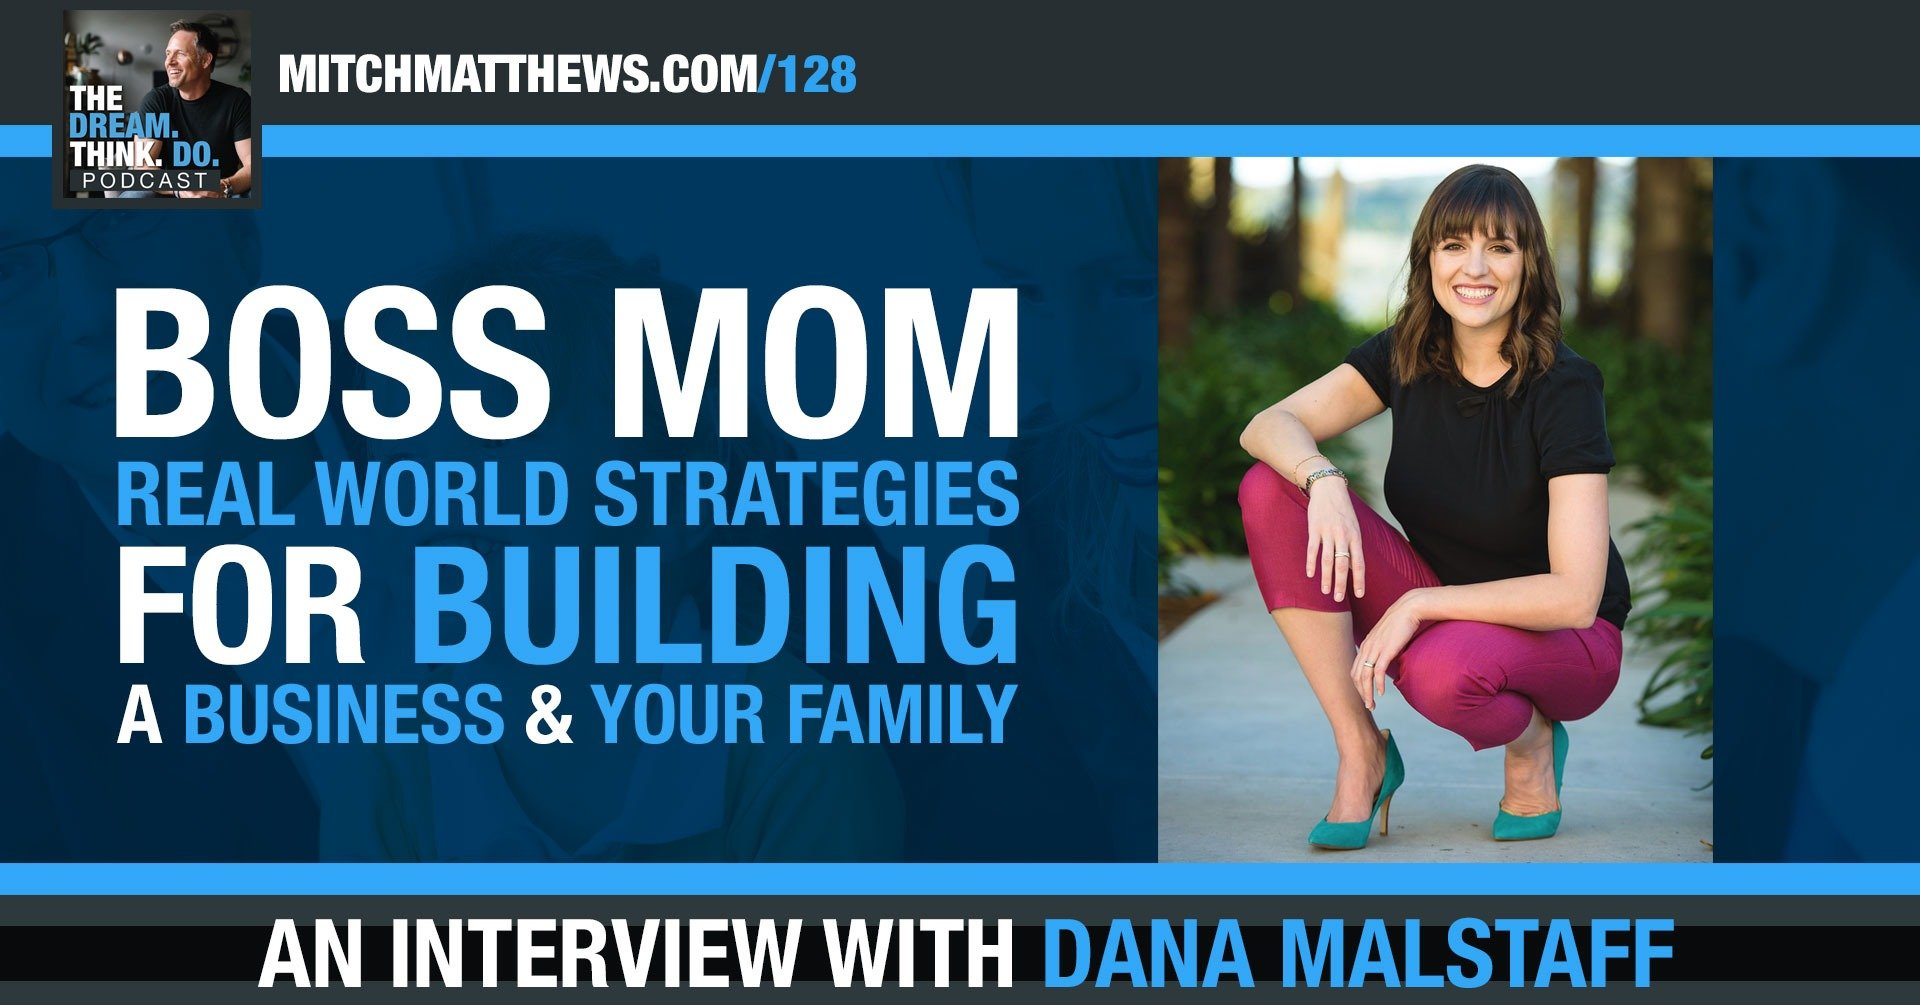 Boss Mom - Real World Strategies for Building a Business & Your Family Dana Malstaff